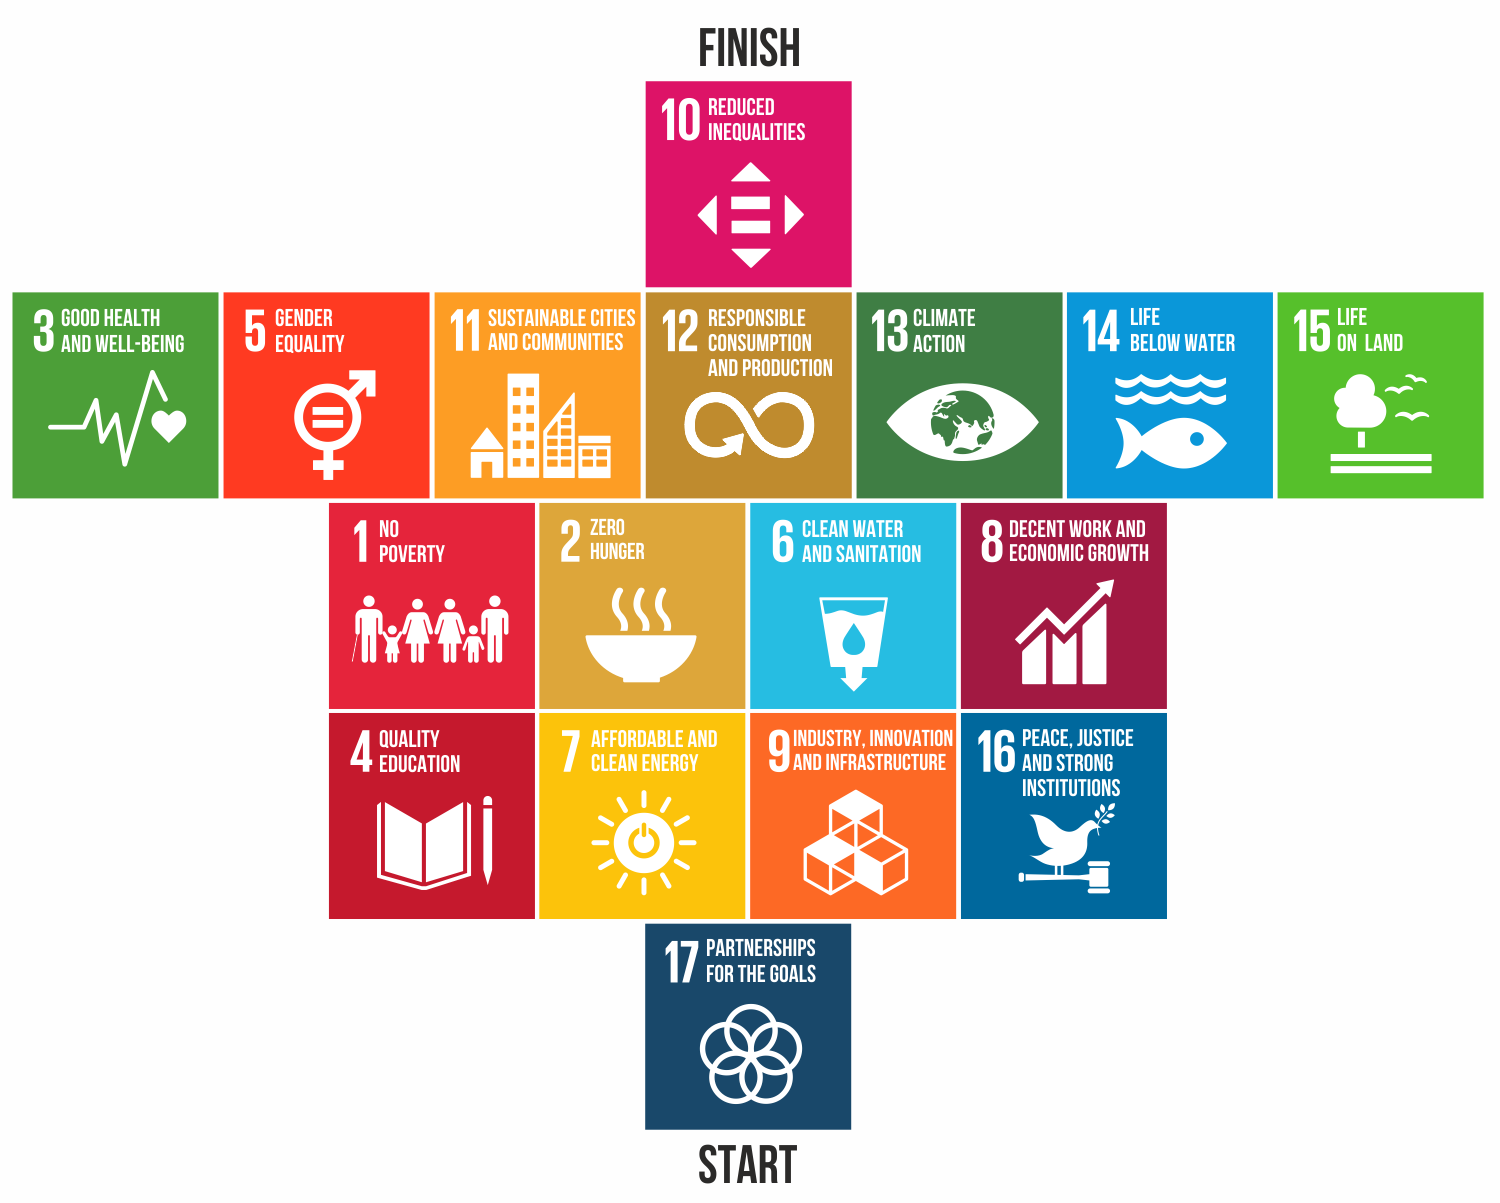 The global goals for sustainable development (SDGs)